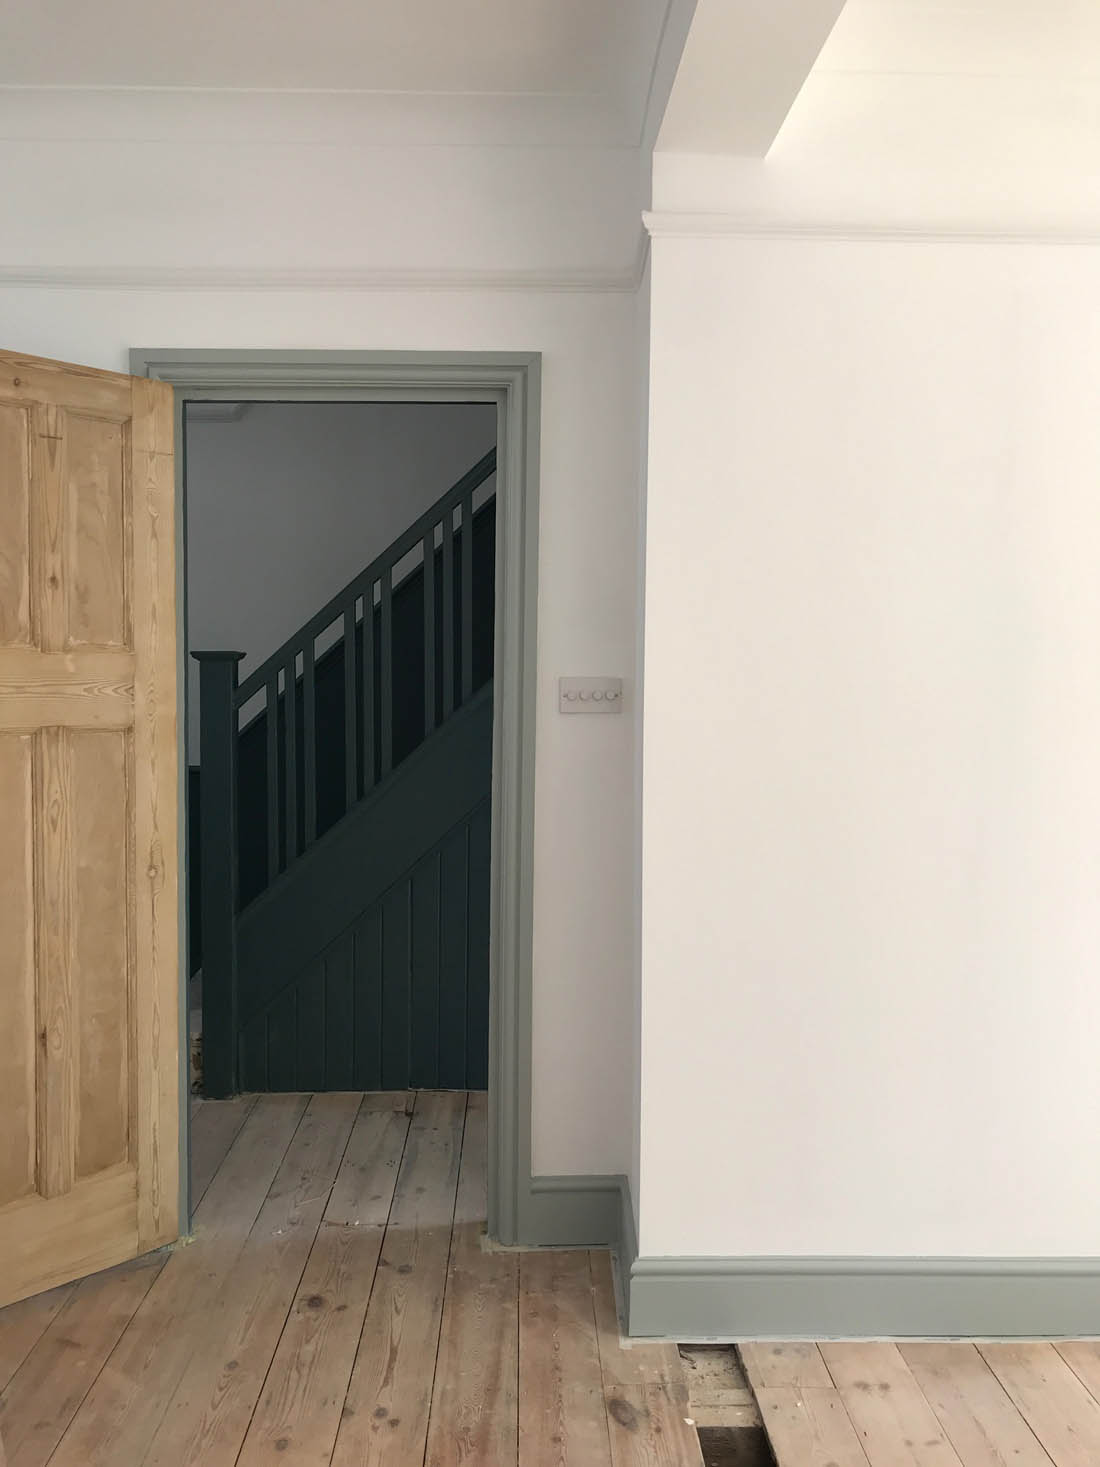 Weeks five and six: Our house renovation